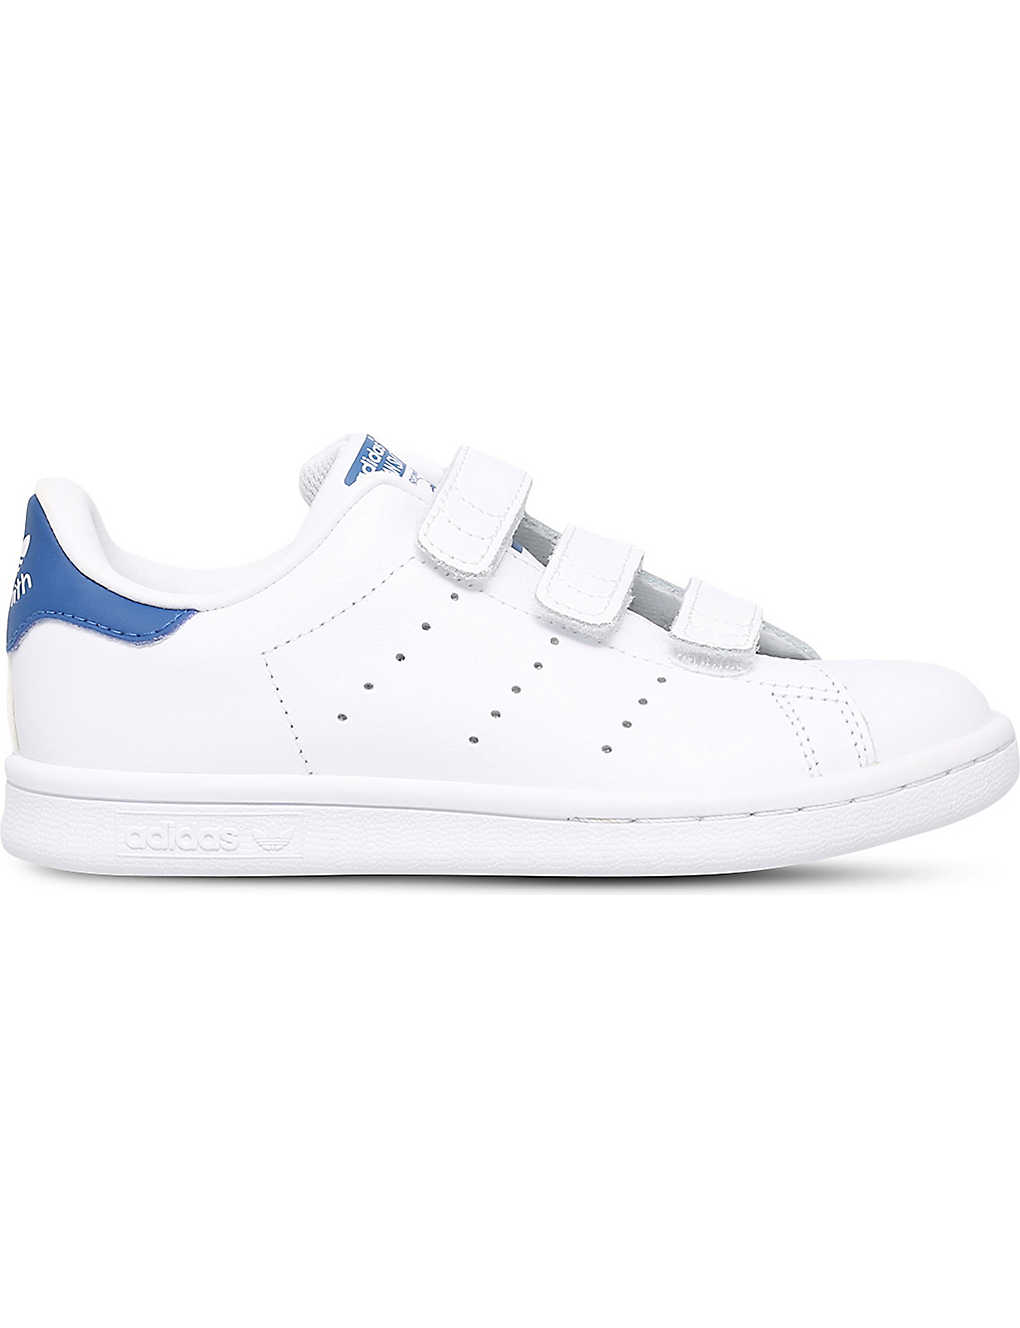 separation shoes f2f03 c6fe5 ADIDAS - Stan Smith leather trainers 4-9 years | Selfridges.com